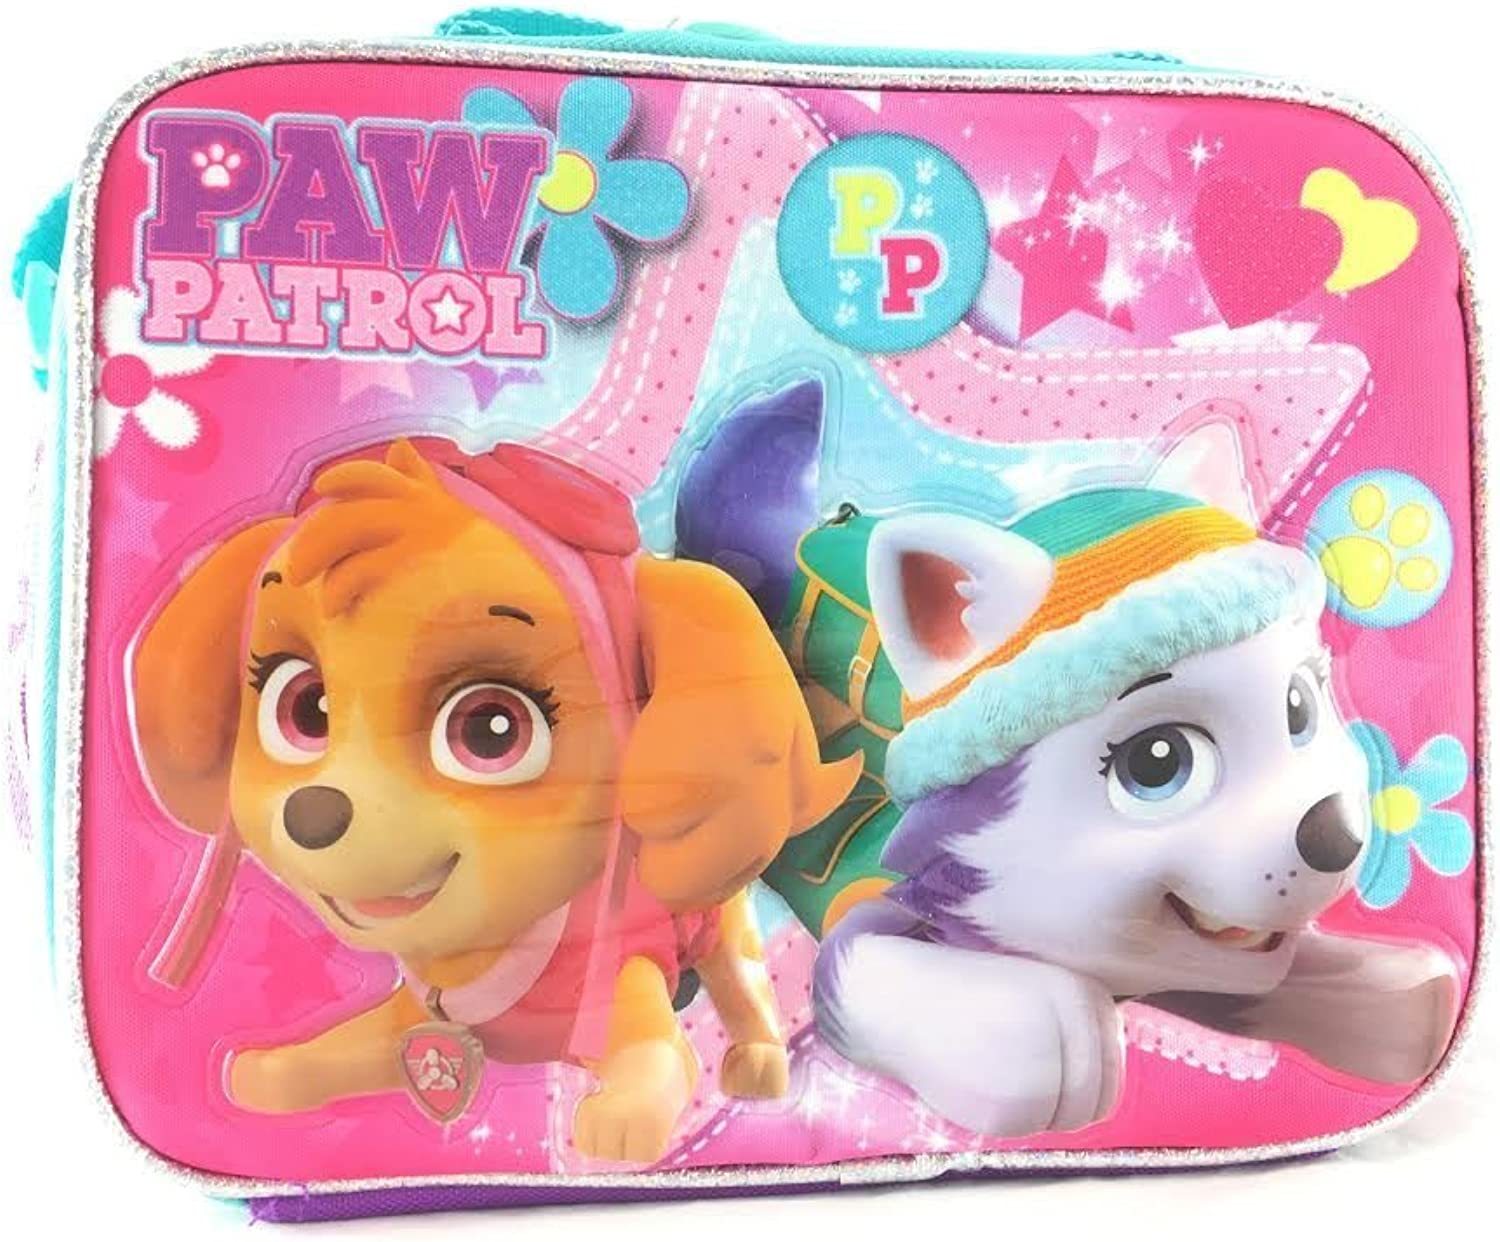 New New New Nickelodeon Paw Patrol Girls Lunch Bag B01HDRIHBG | Qualifizierte Herstellung